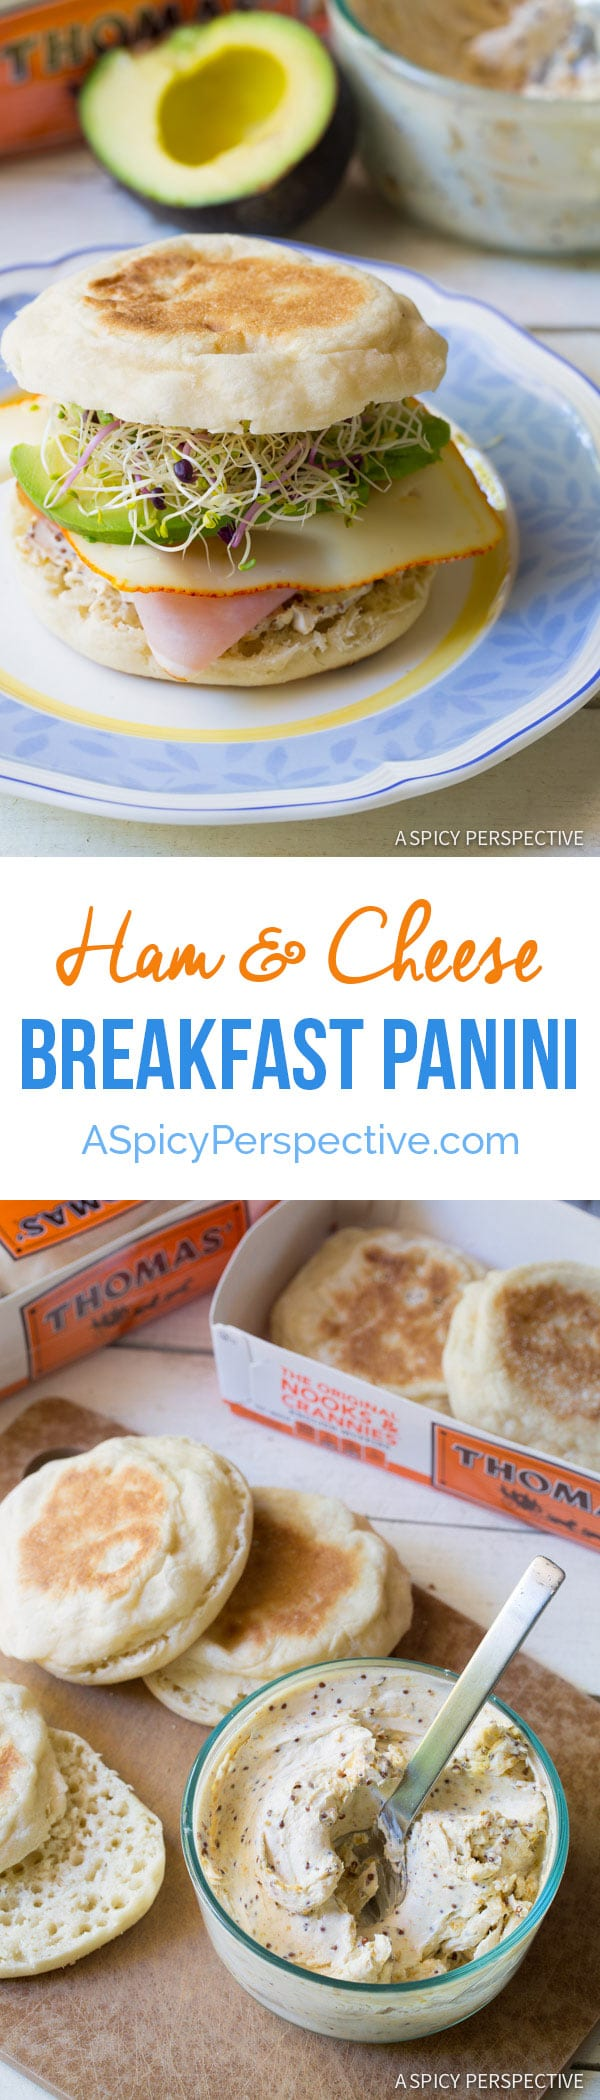 Ham and Cheese Breakfast Panini - A Spicy Perspective